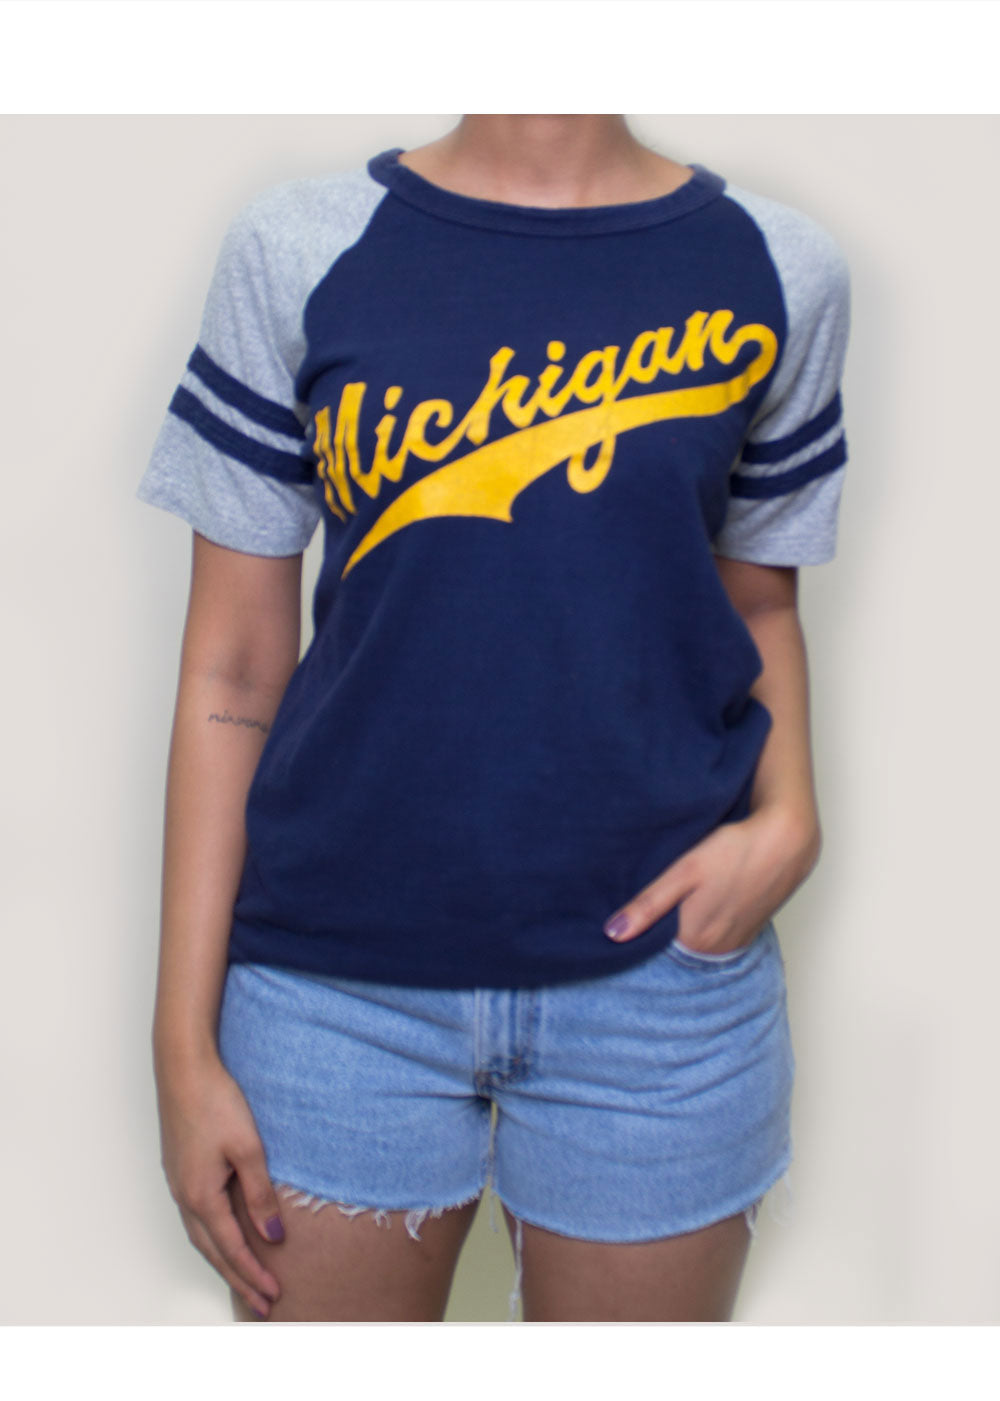 Michigan Graphic Tee